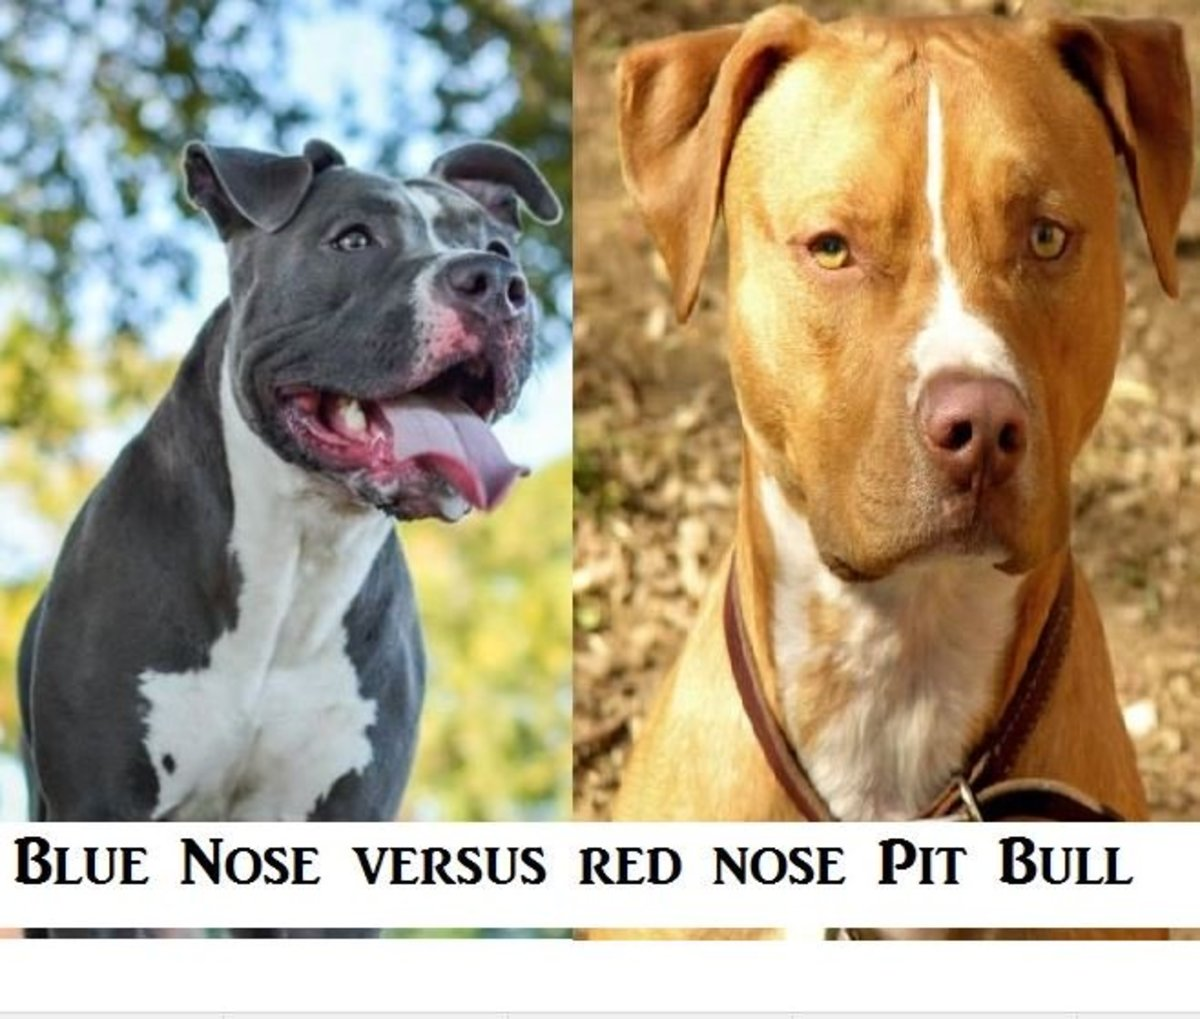 Difference between blue nose pit bull and red nose pit bull.